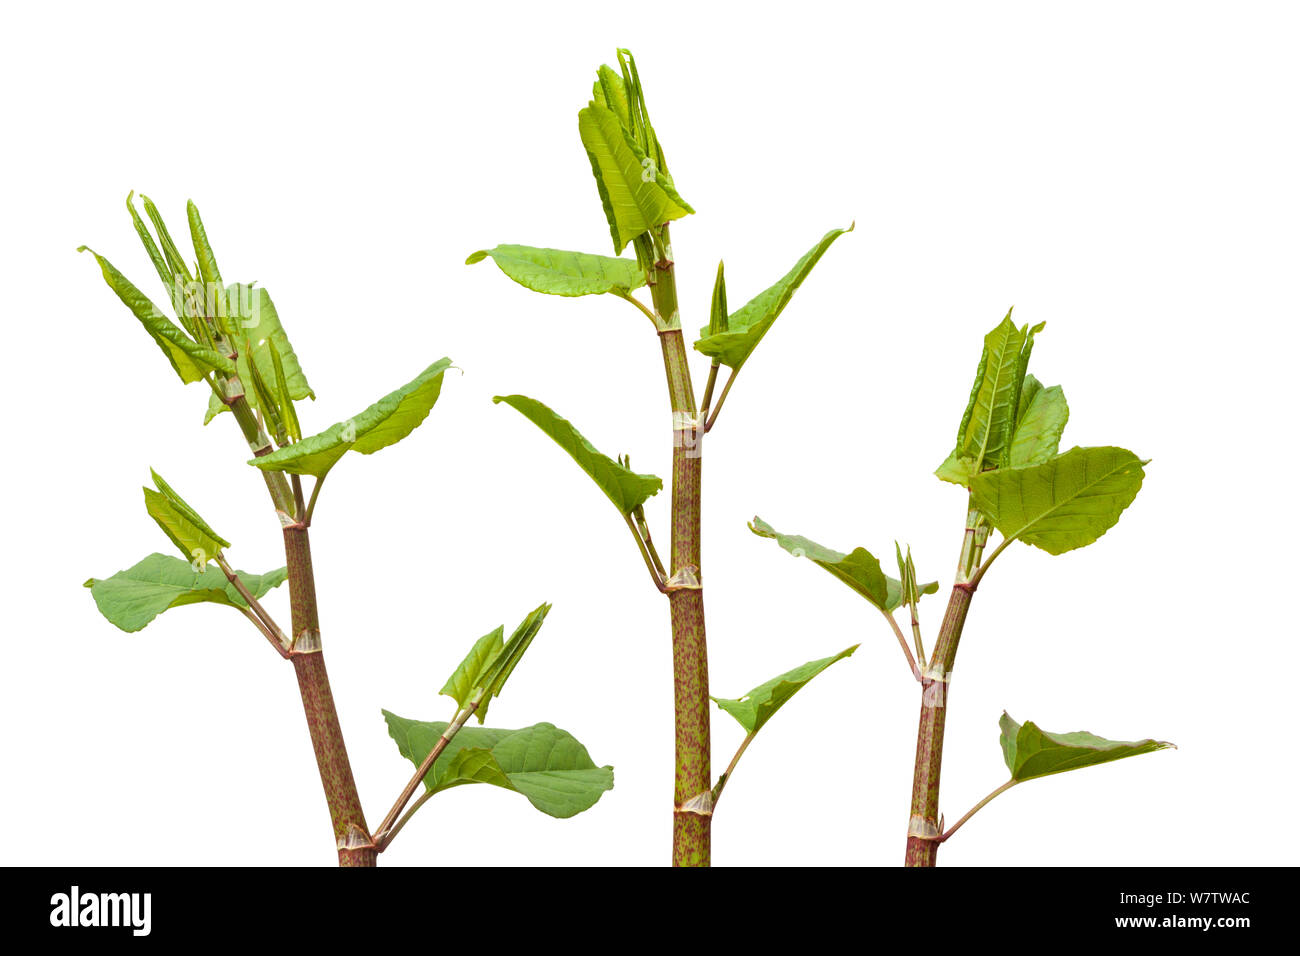 Japanese Knotweed (Fallopia japonica) plant against white background, UK. Invasive species. Stock Photo